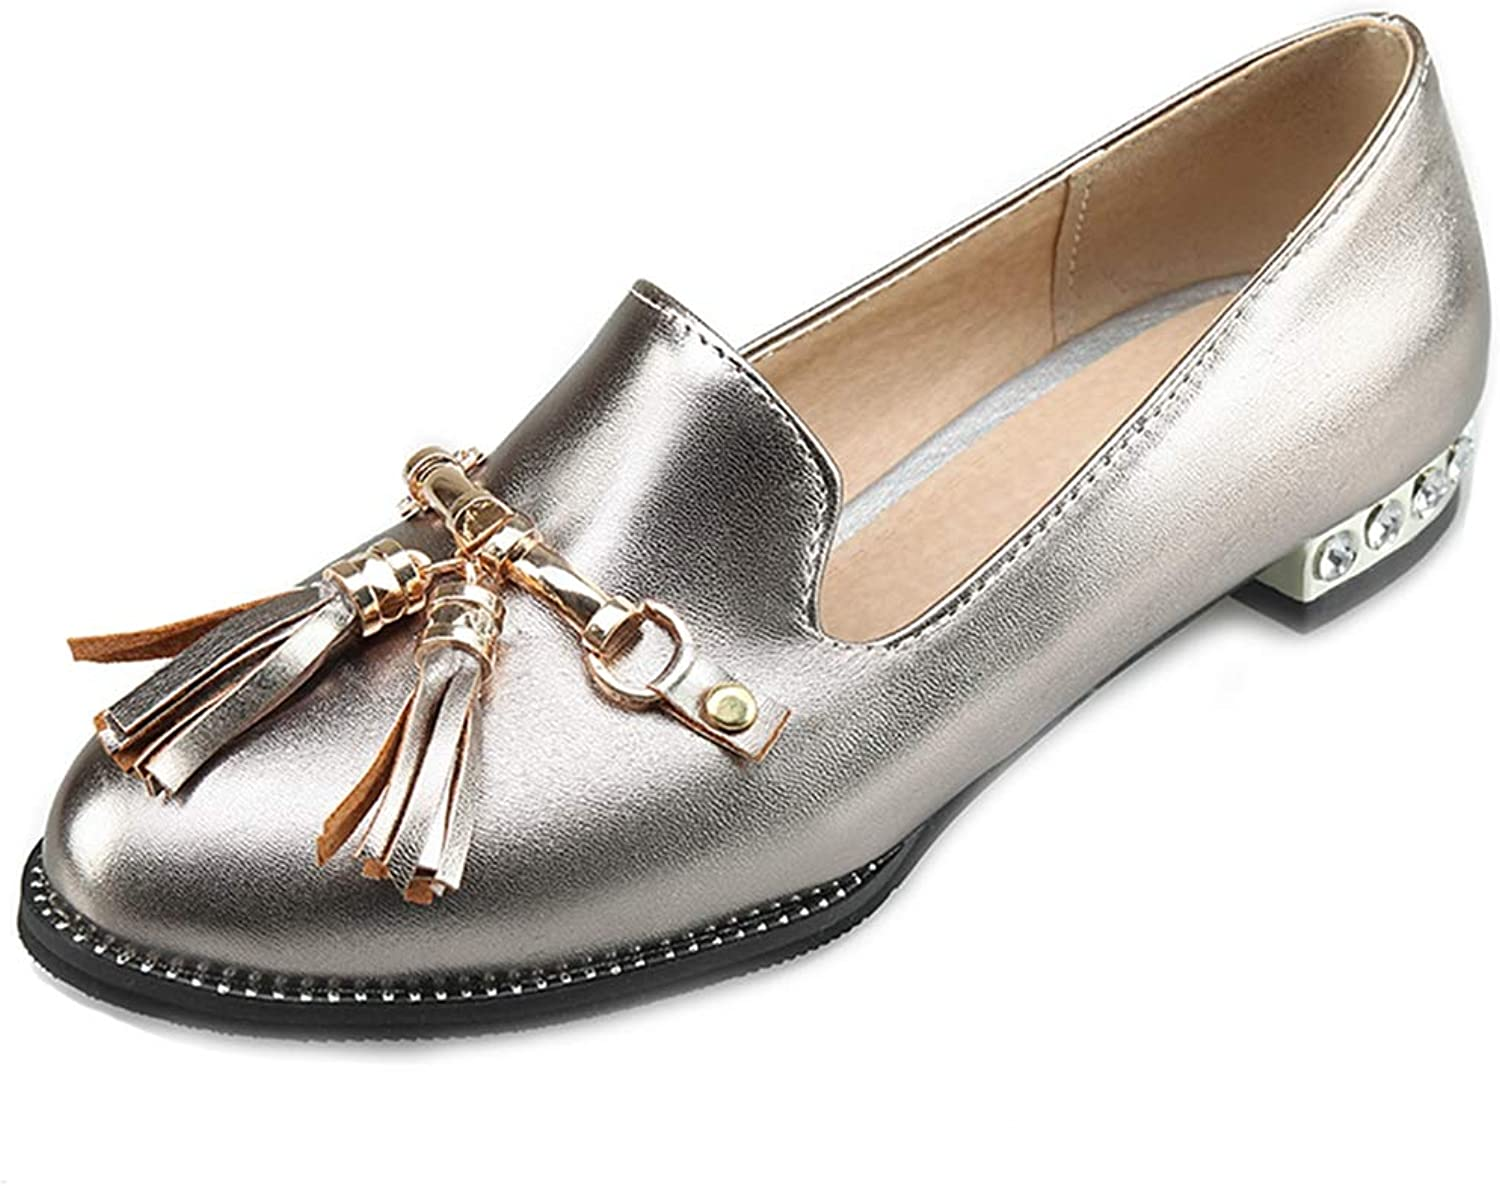 GIY Flat Tassel Oxford Loafers shoes for Women Round Toe Slip-On Studded Metallic Classic Dress Oxfords